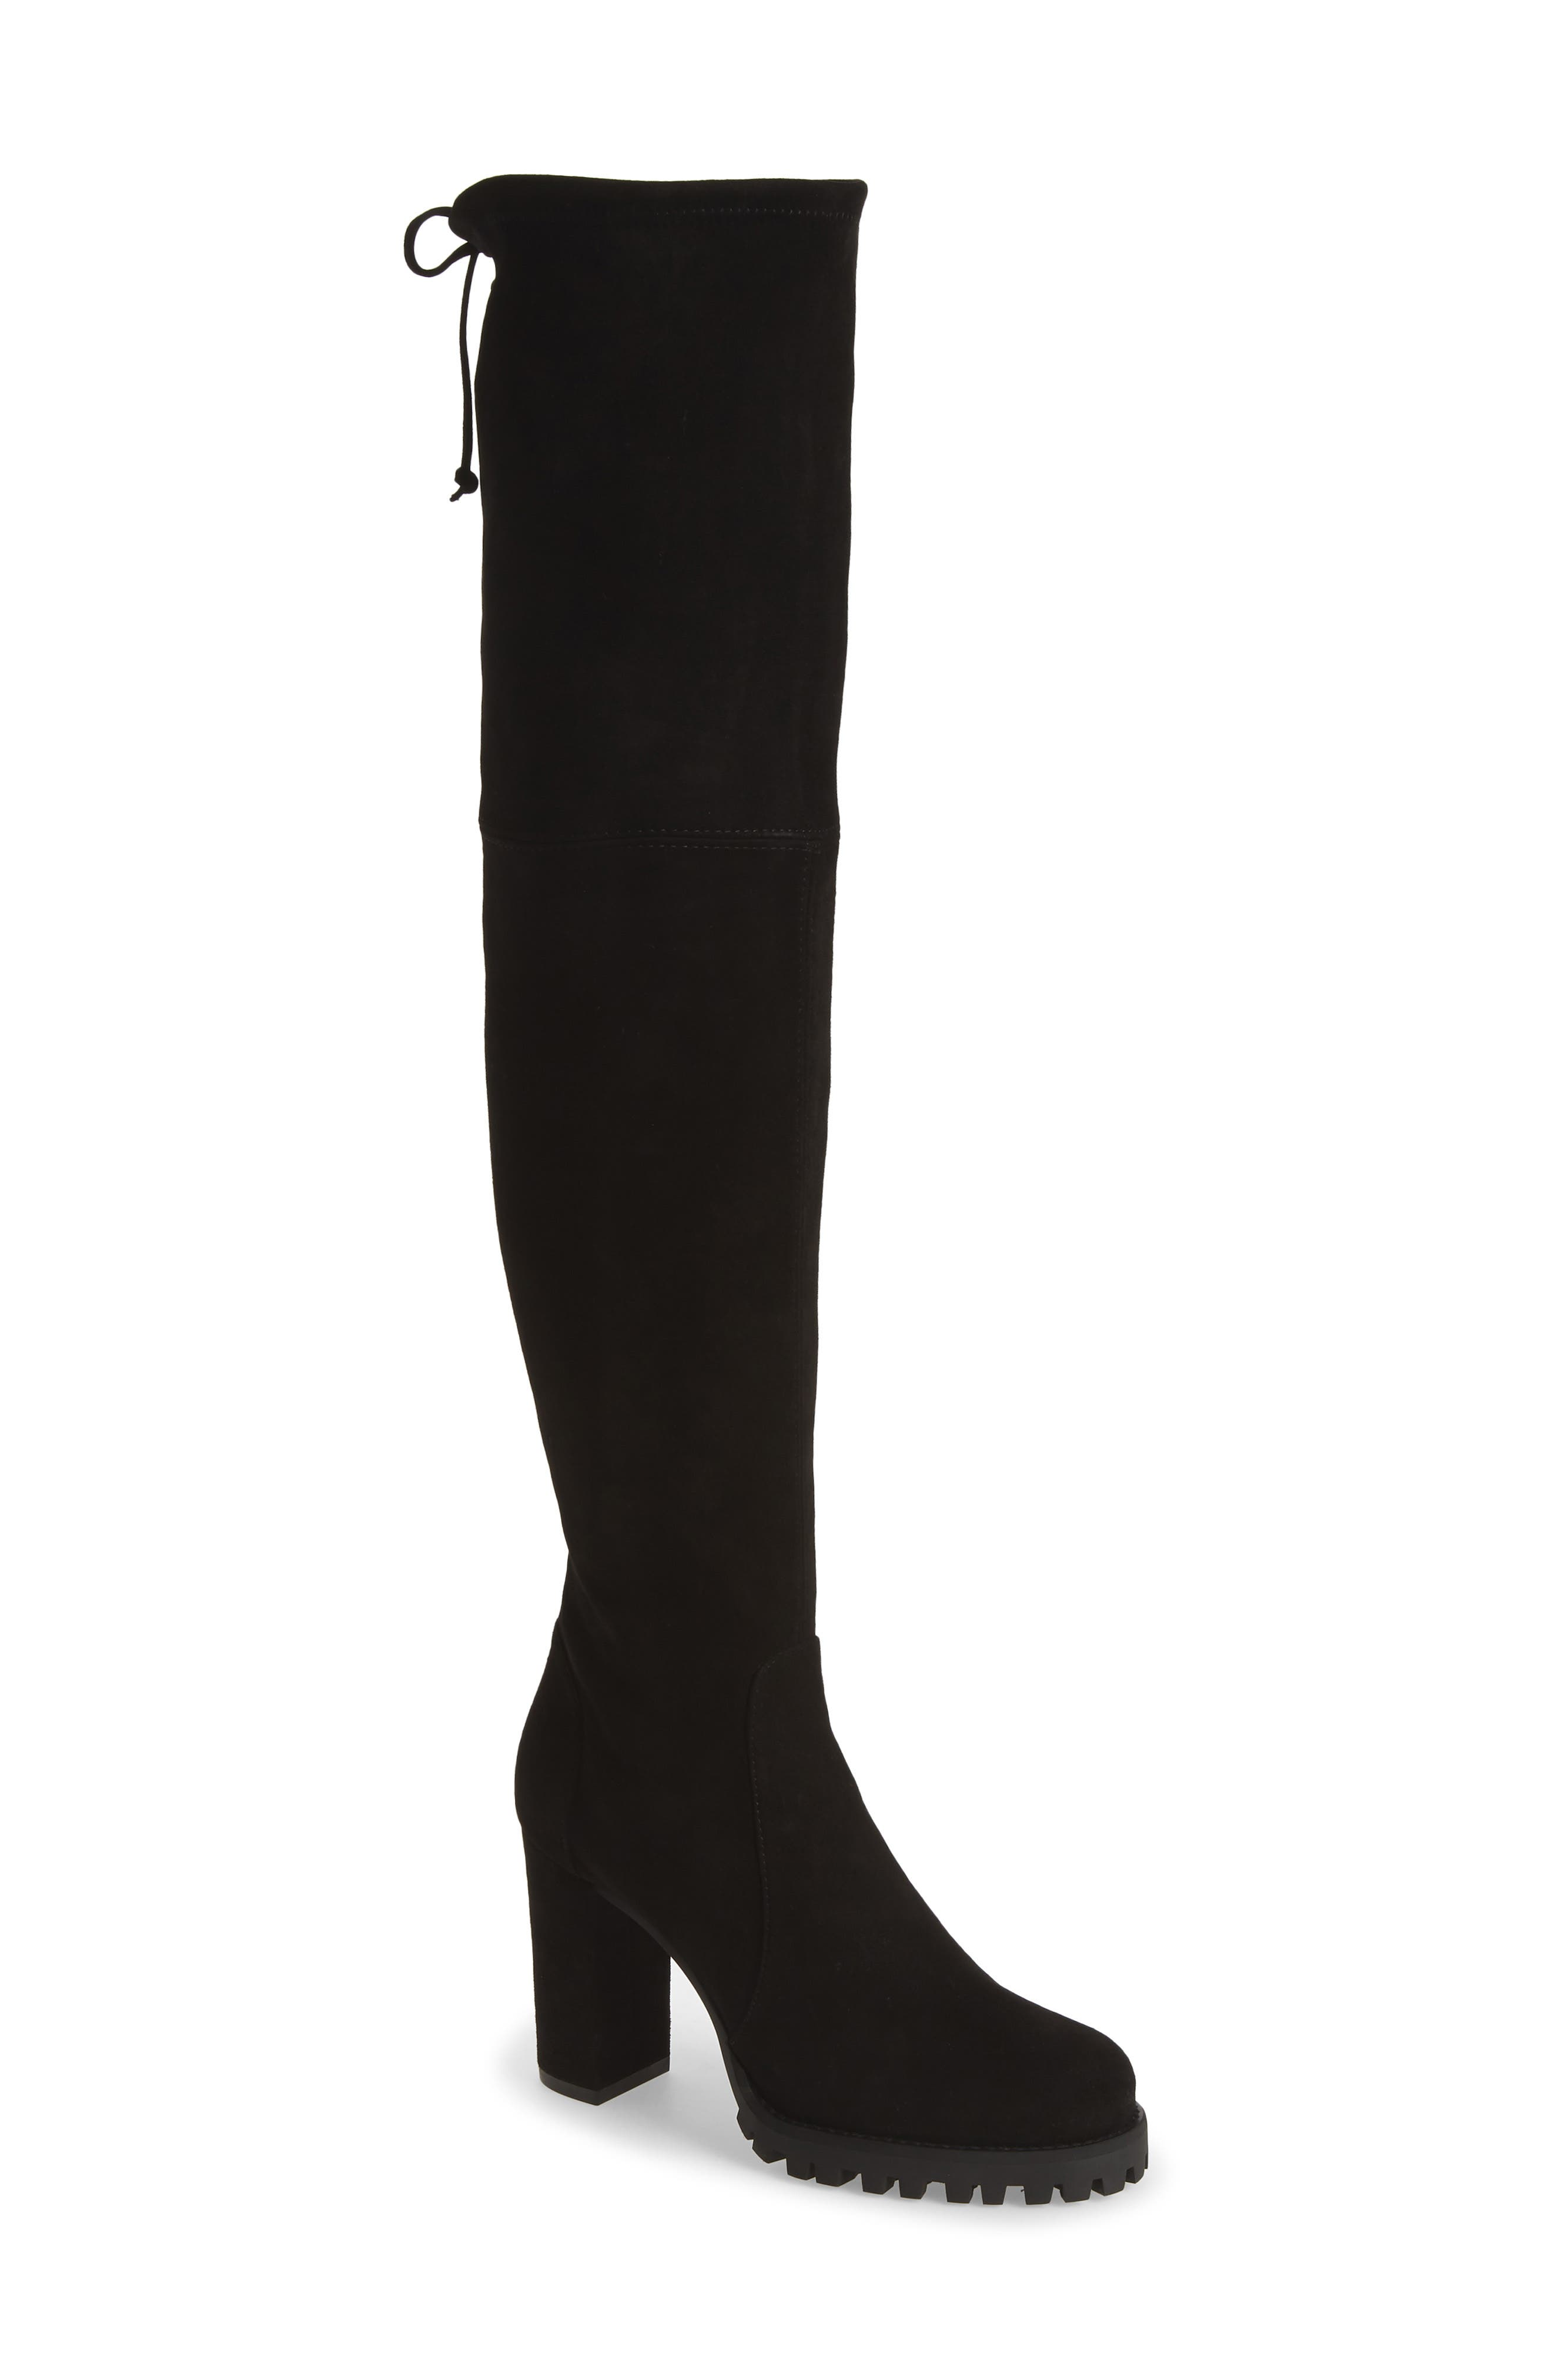 Sleek and stylish, this classic suede boot is the perfect addition to your autumn wardrobe. Style Name: Stuart Weitzman Zoella Over The Knee Boot (Women) (Narrow Calf). Style Number: 6100217. Available in stores.